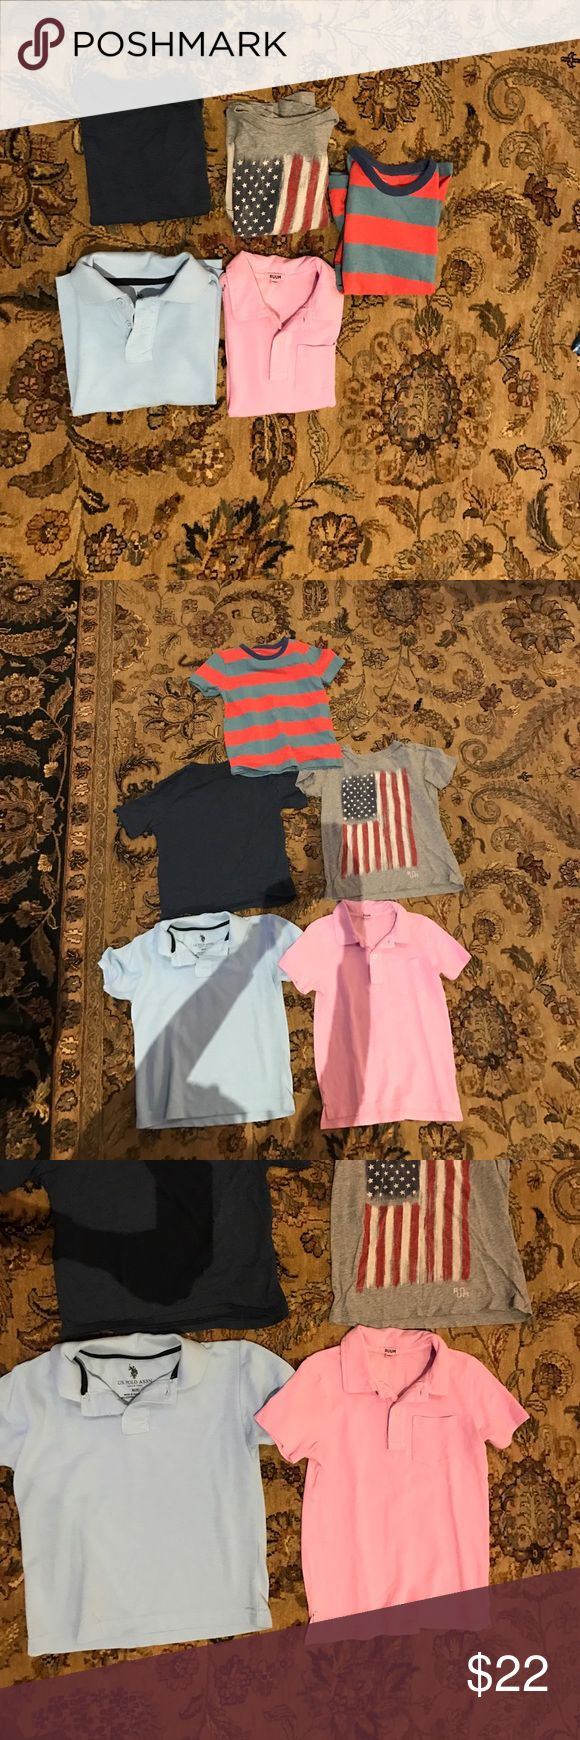 All American boy bundle 5/6 All in great condition. Pink Ruum polo size 5/6 100% cotton very soft. Light blue polo size 6; 60 cotton/40 poly. US polo assn. mini Boden (Nordstrom purchase)  size 5/6 100% cotton. Ruum American flag tee super cute 100% cotton very soft. Boys navy blue v neck tee by Cherokee size 4:5 but fits like 5/6 60 cotton 40 poly. Your boy will be in style all summer w/ this bundle!! Separately Tees are $5ea. Polos $6ea. Best value purchase entire bundle. Ruum Shirts…